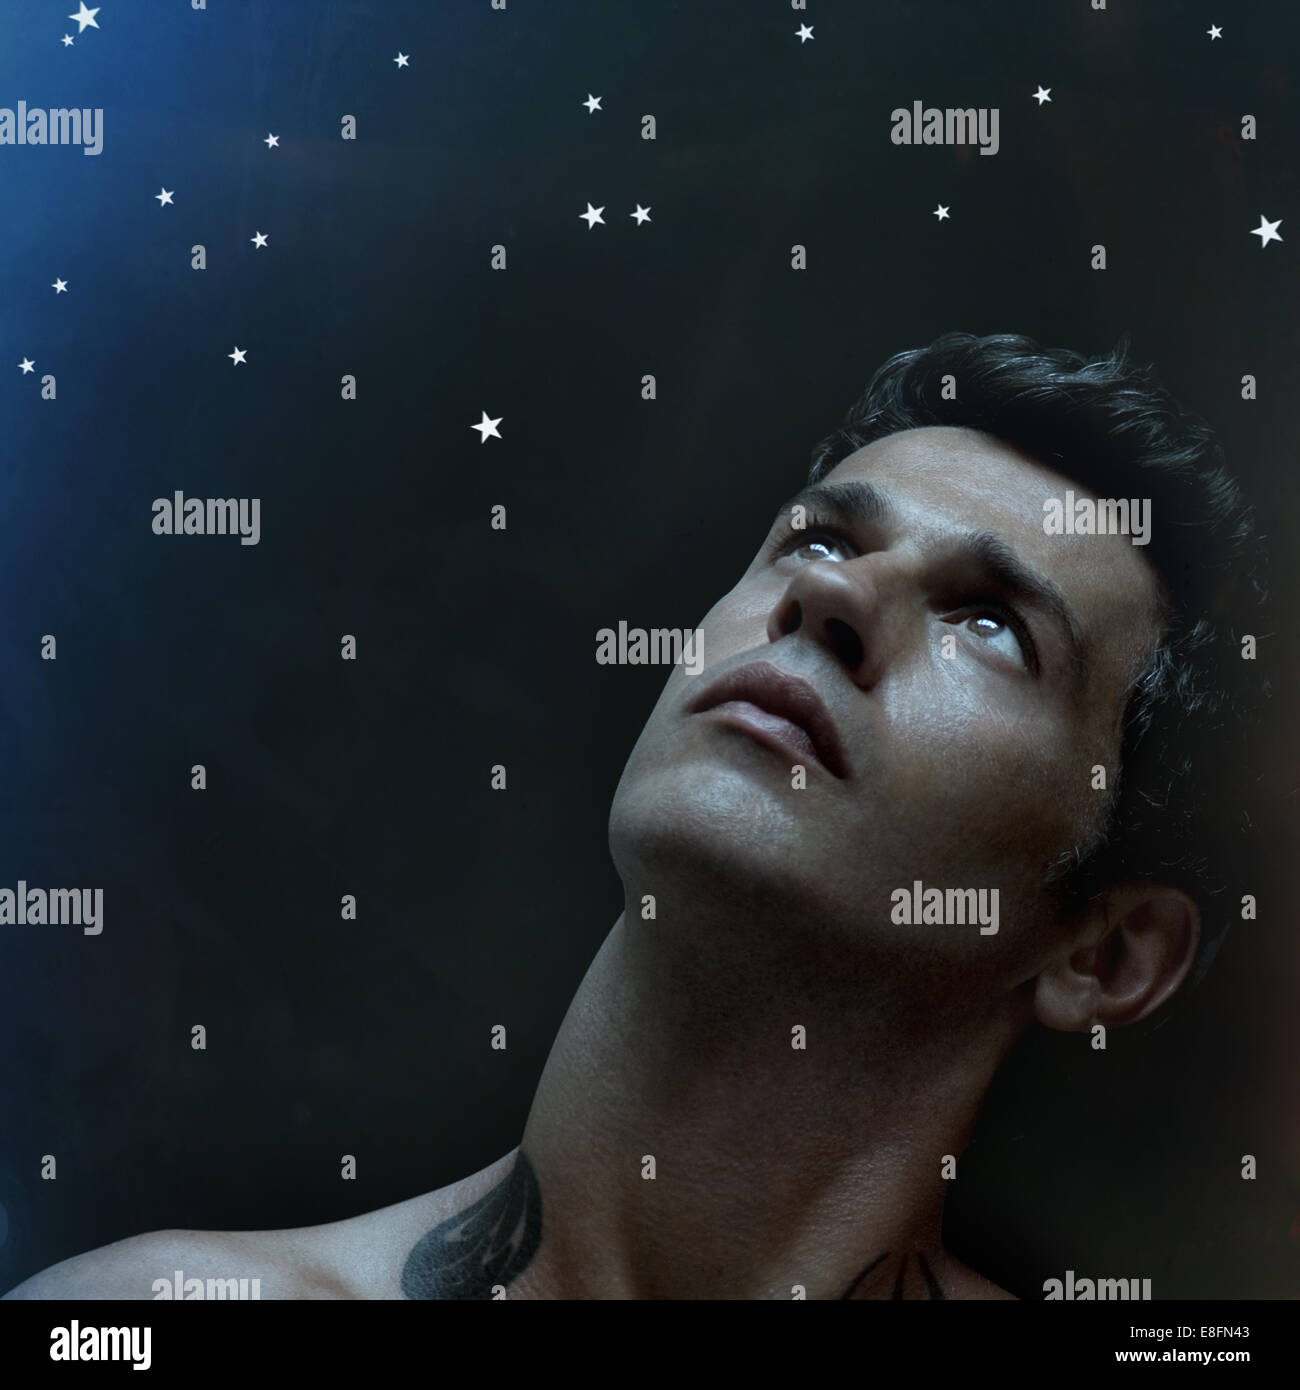 Portrait of man looking at the stars - Stock Image